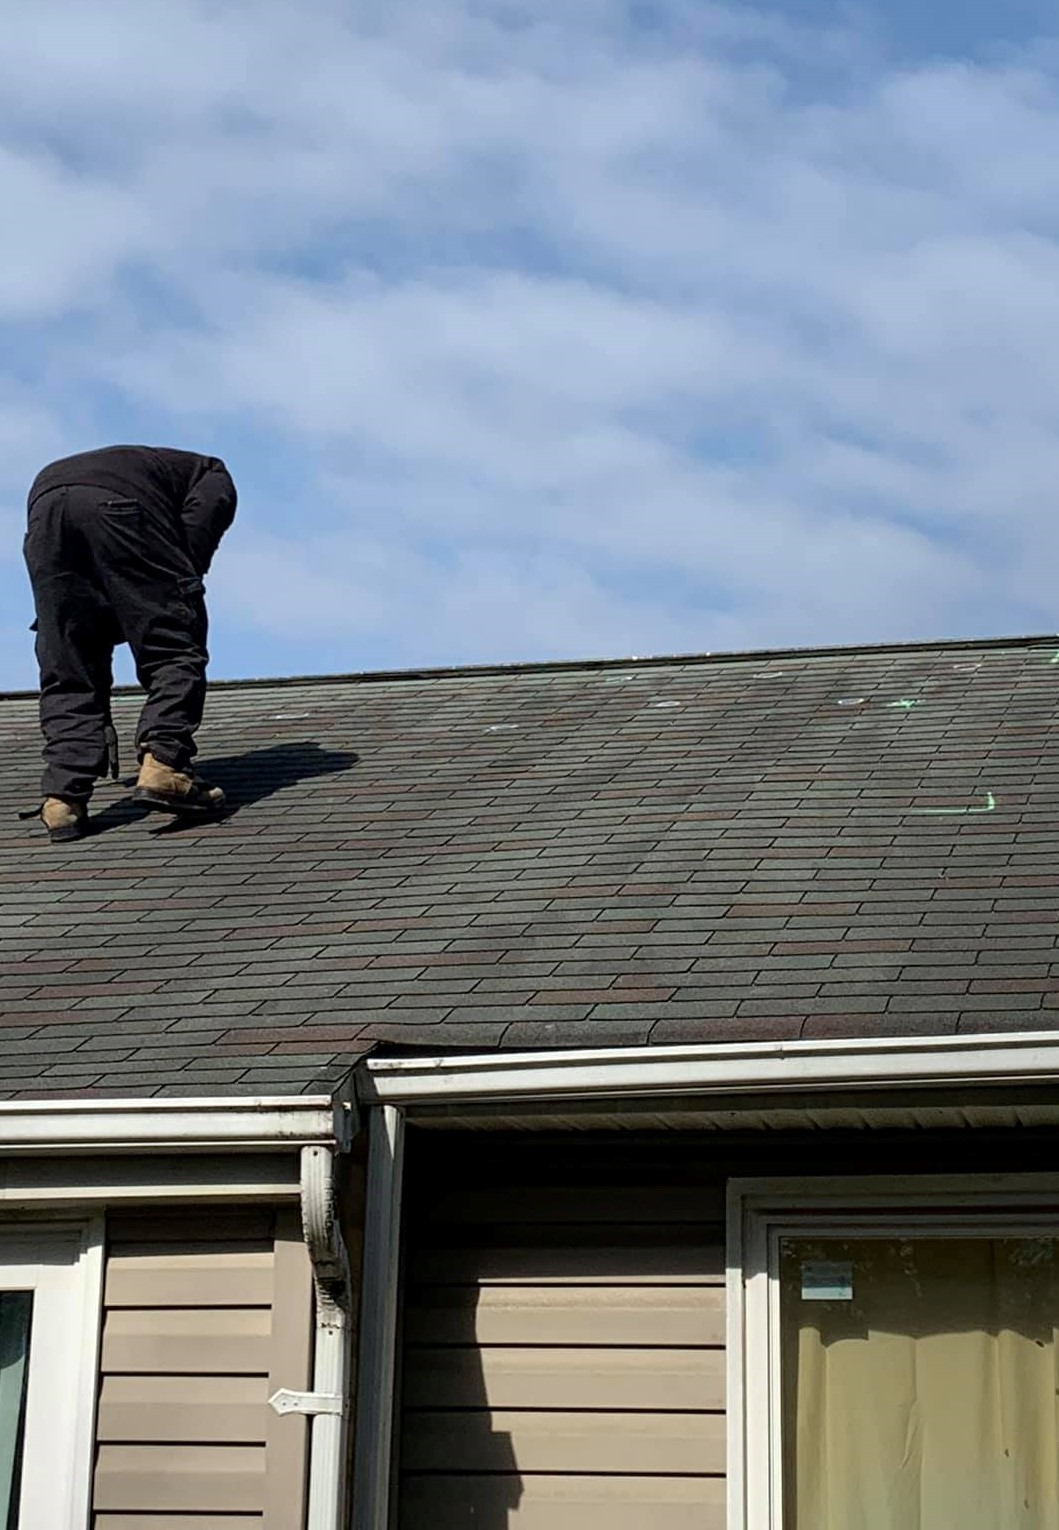 Hail Damage Roof Inspection by Chateau Public Adjusters in Frederick, MD